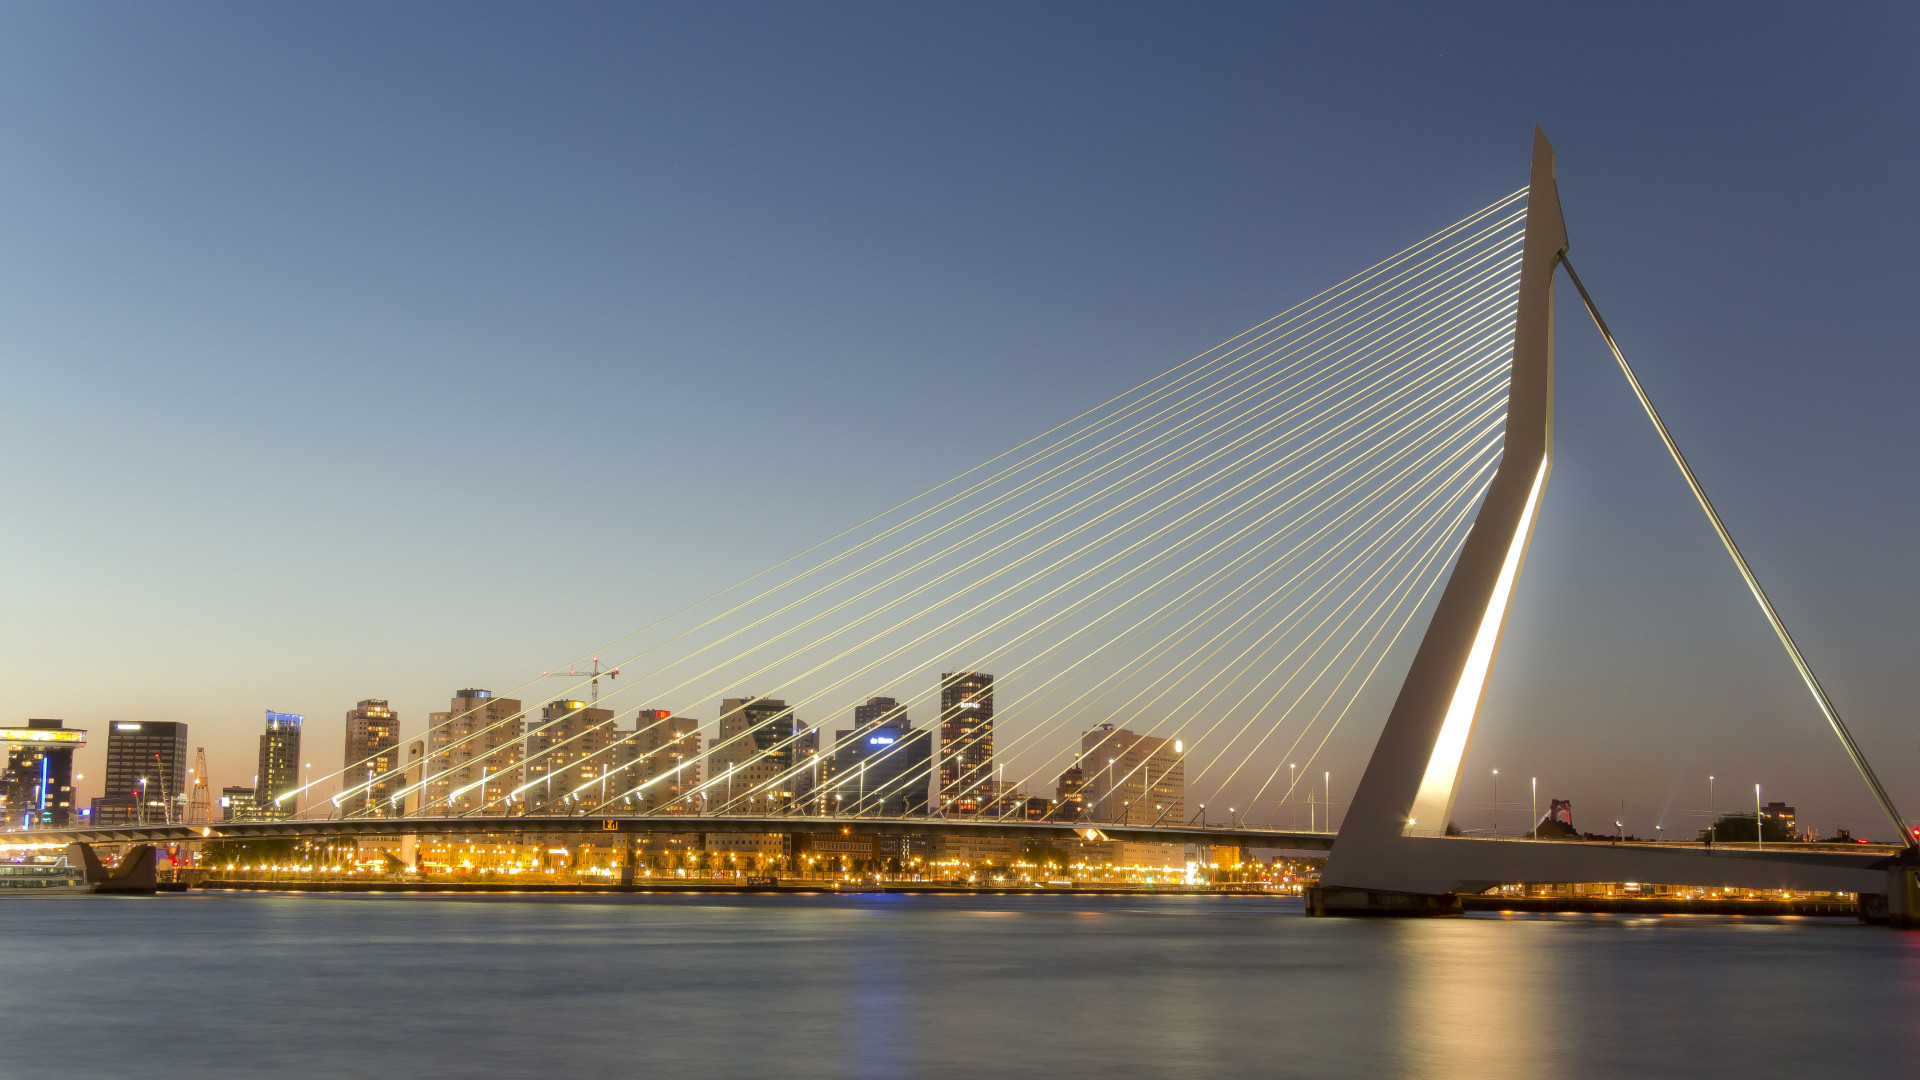 Erasmus bridge | 1920x1080 wallpaper